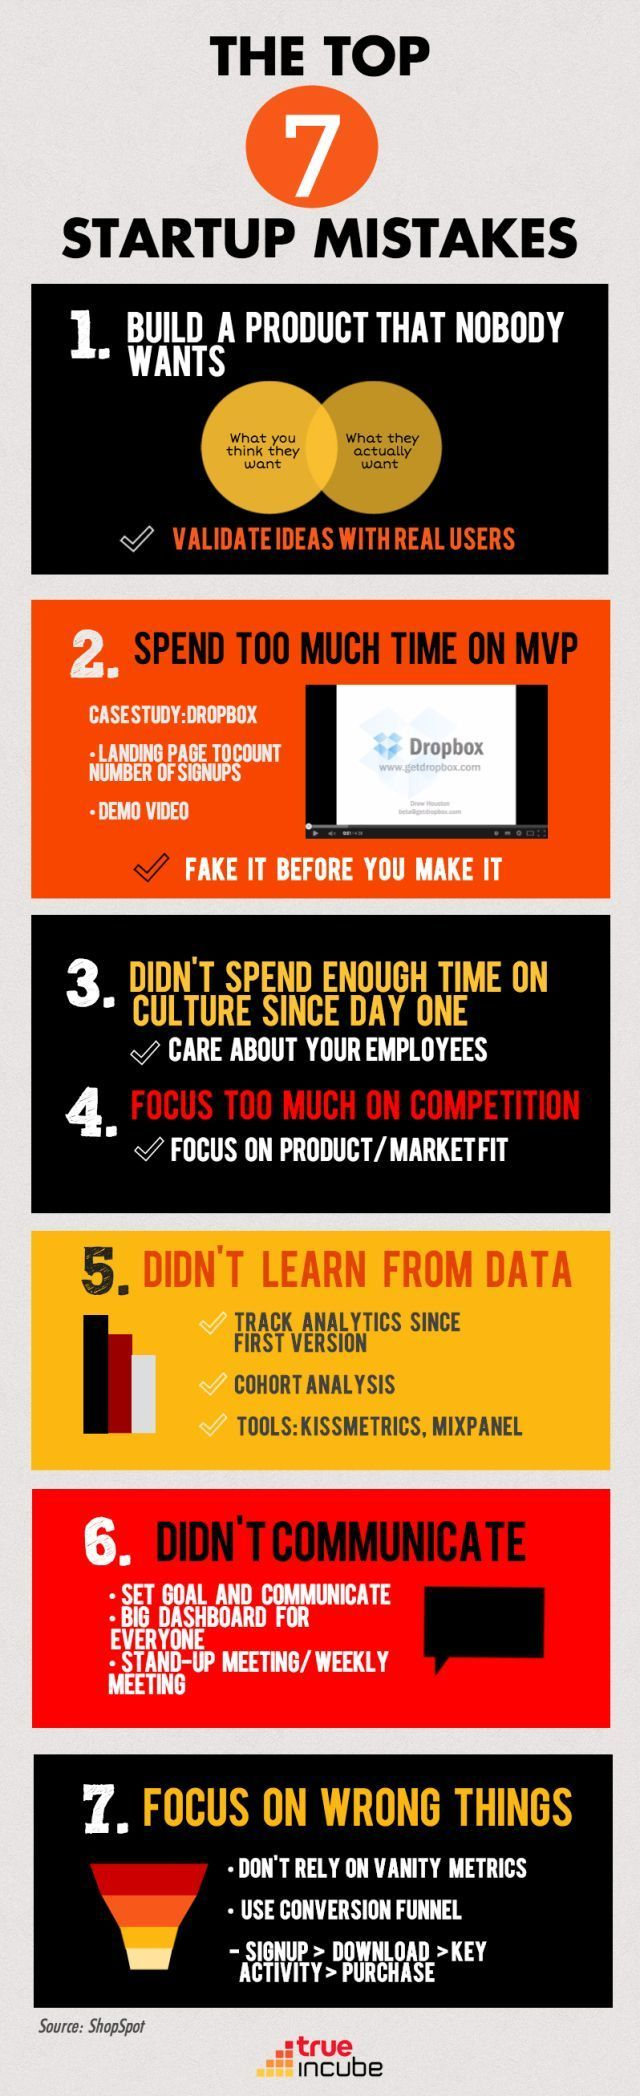 What Are The Top 7 Startup Mistakes For Businesses To Avoid? #infographic How to build your OWN business selling OTHER peoples products!